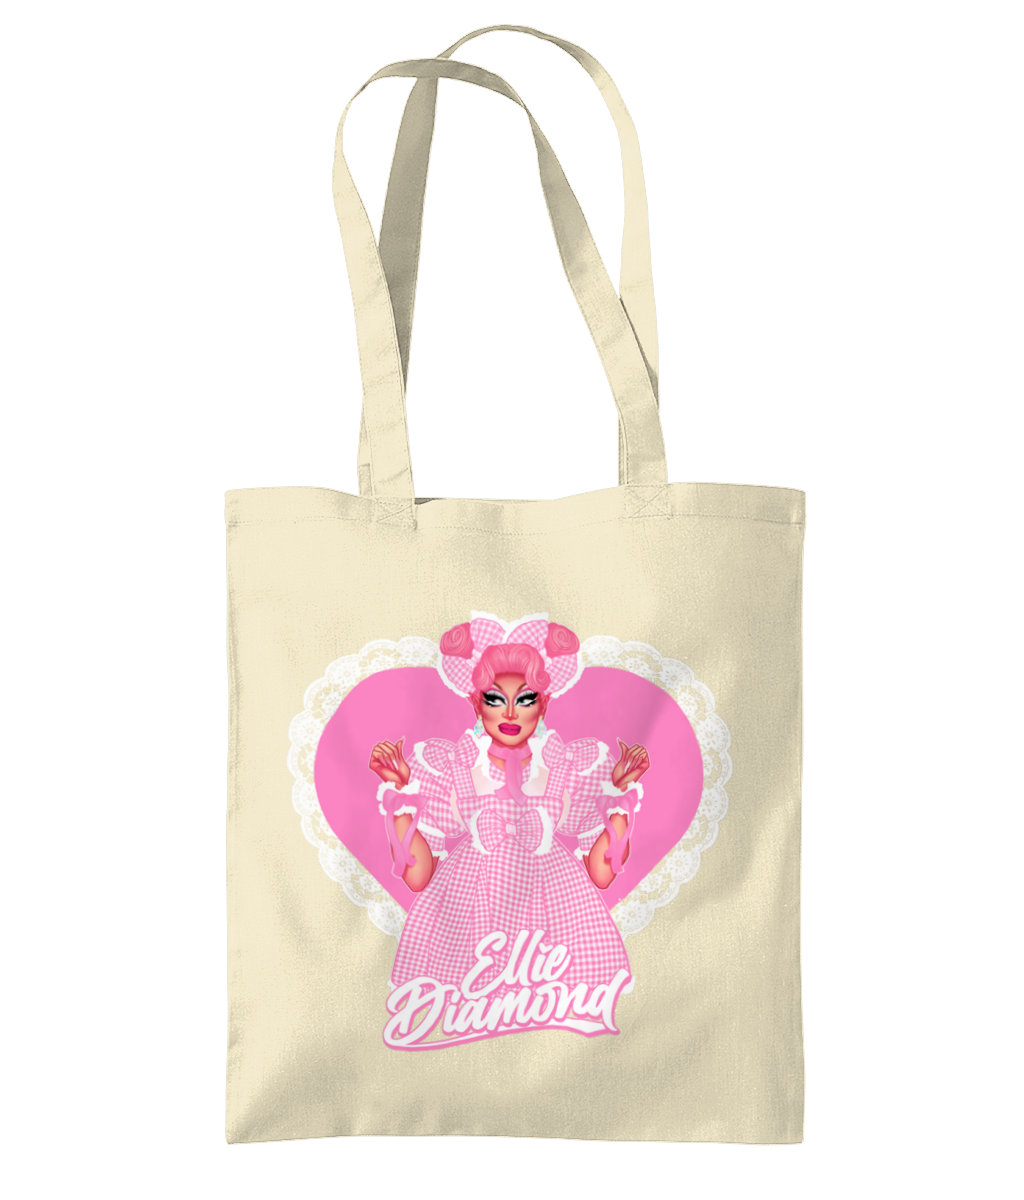 Ellie Diamond - The Dundee Dorothy Tote Bag